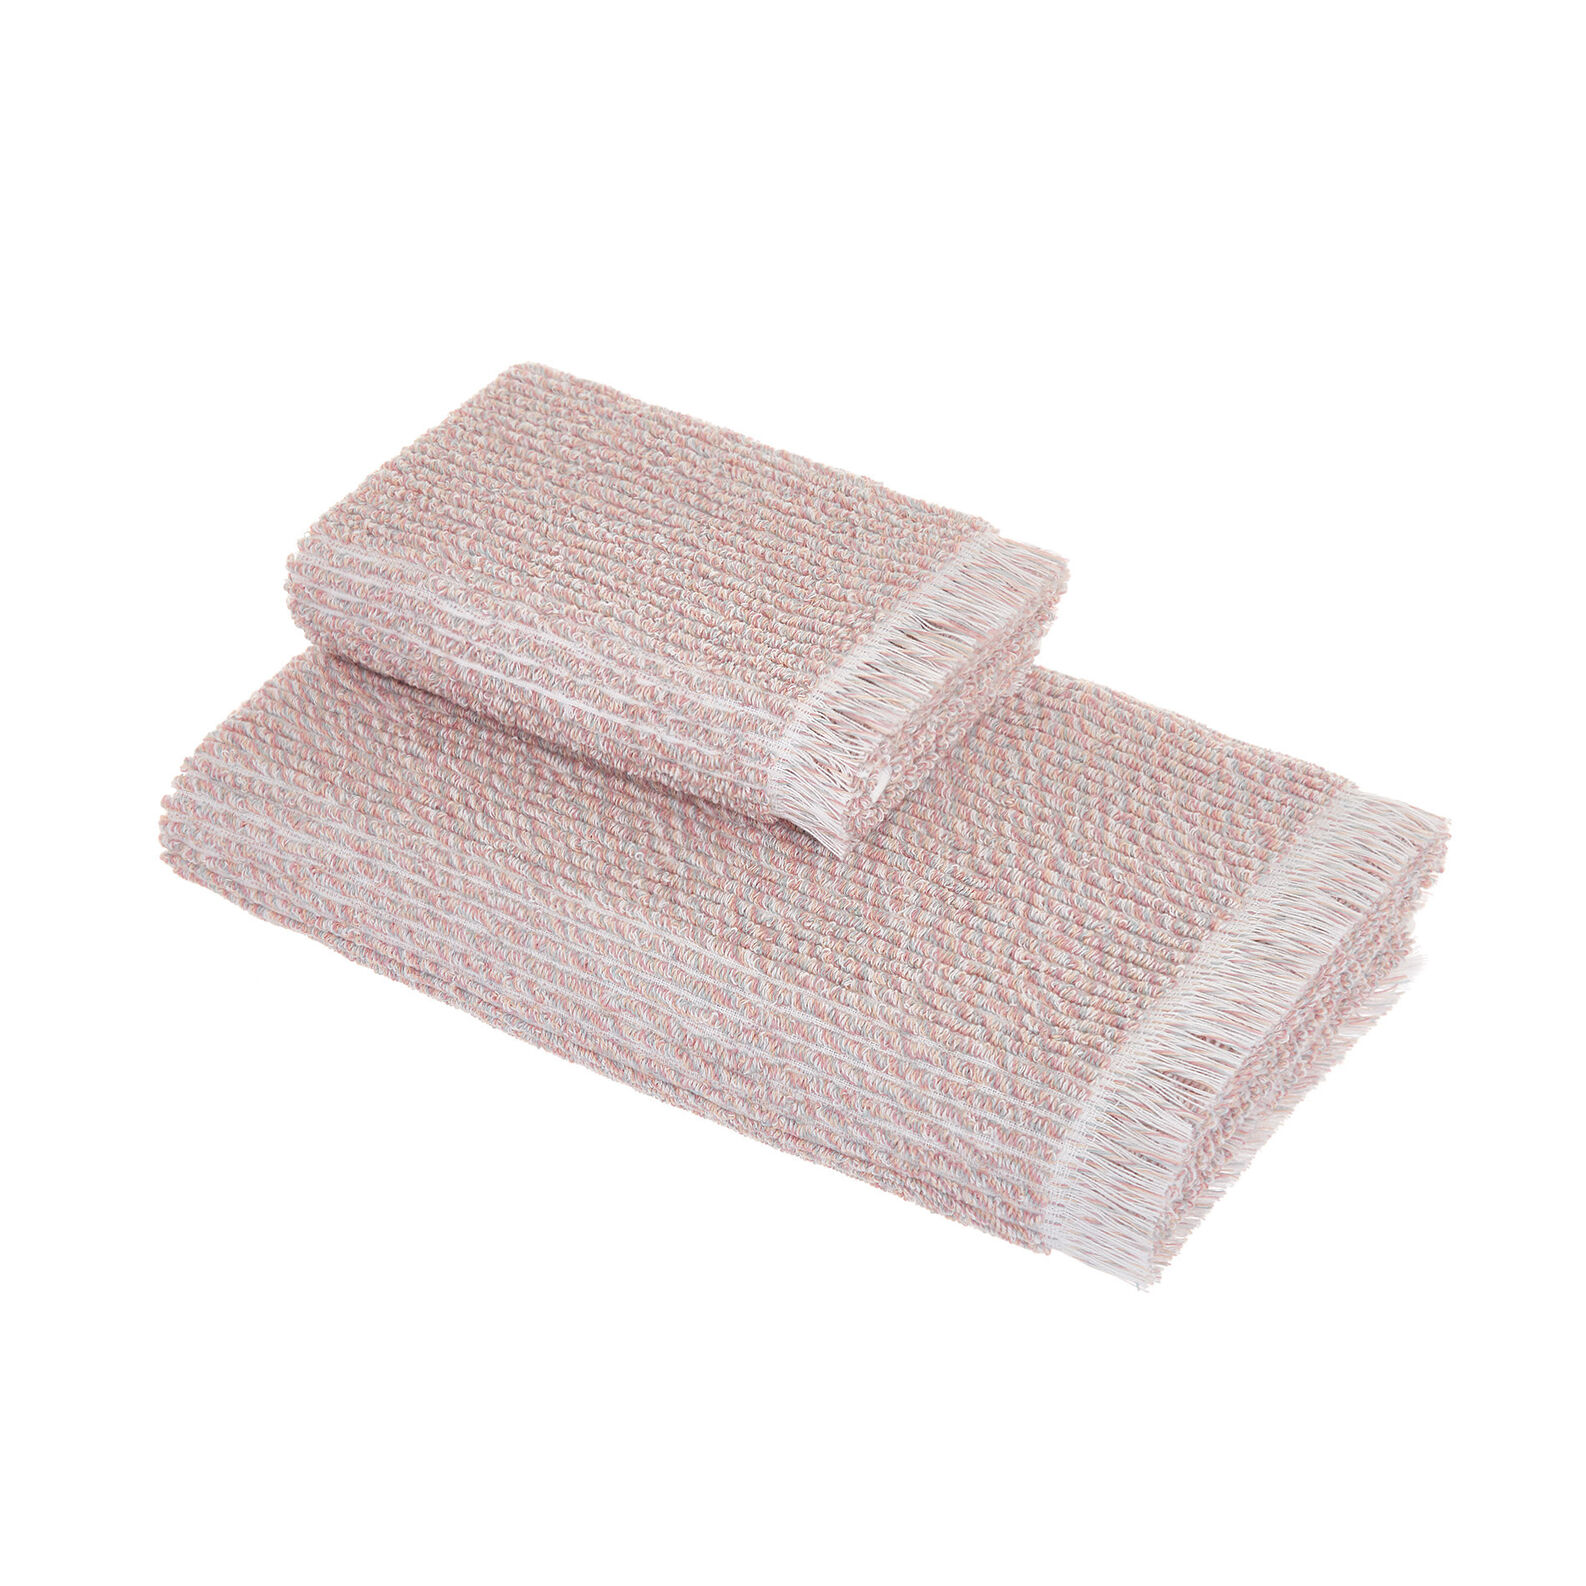 Cotton terry towel with mélange effect